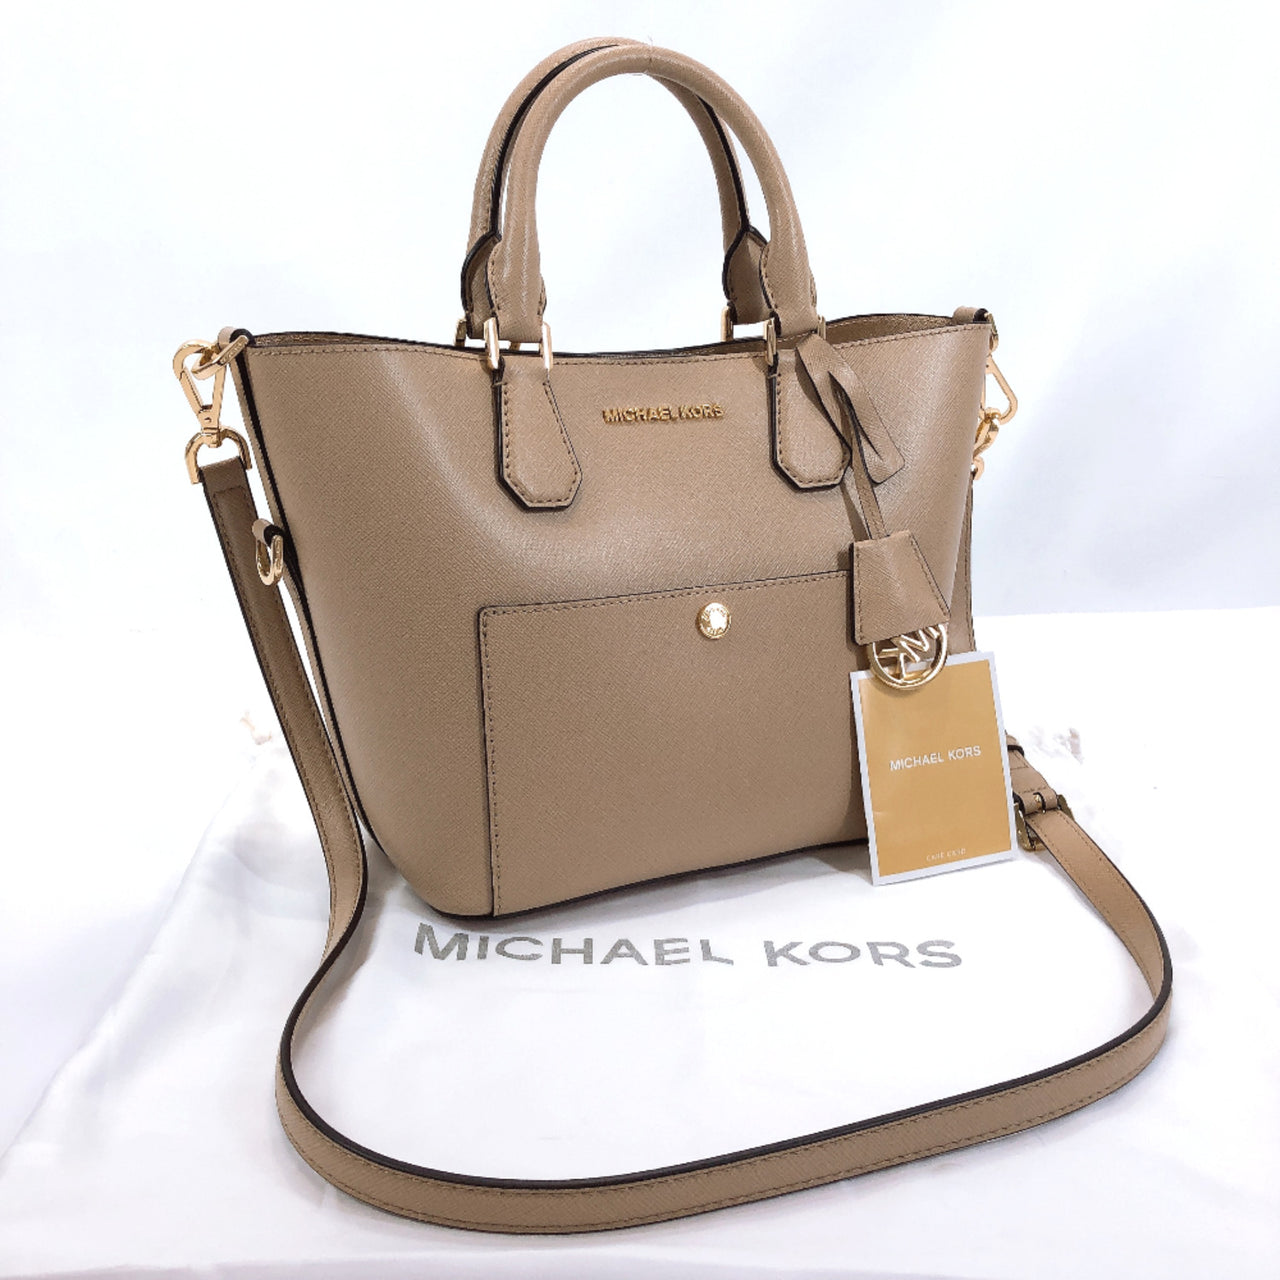 Michael Kors Shoulder Bag 2way leather beige Women Used